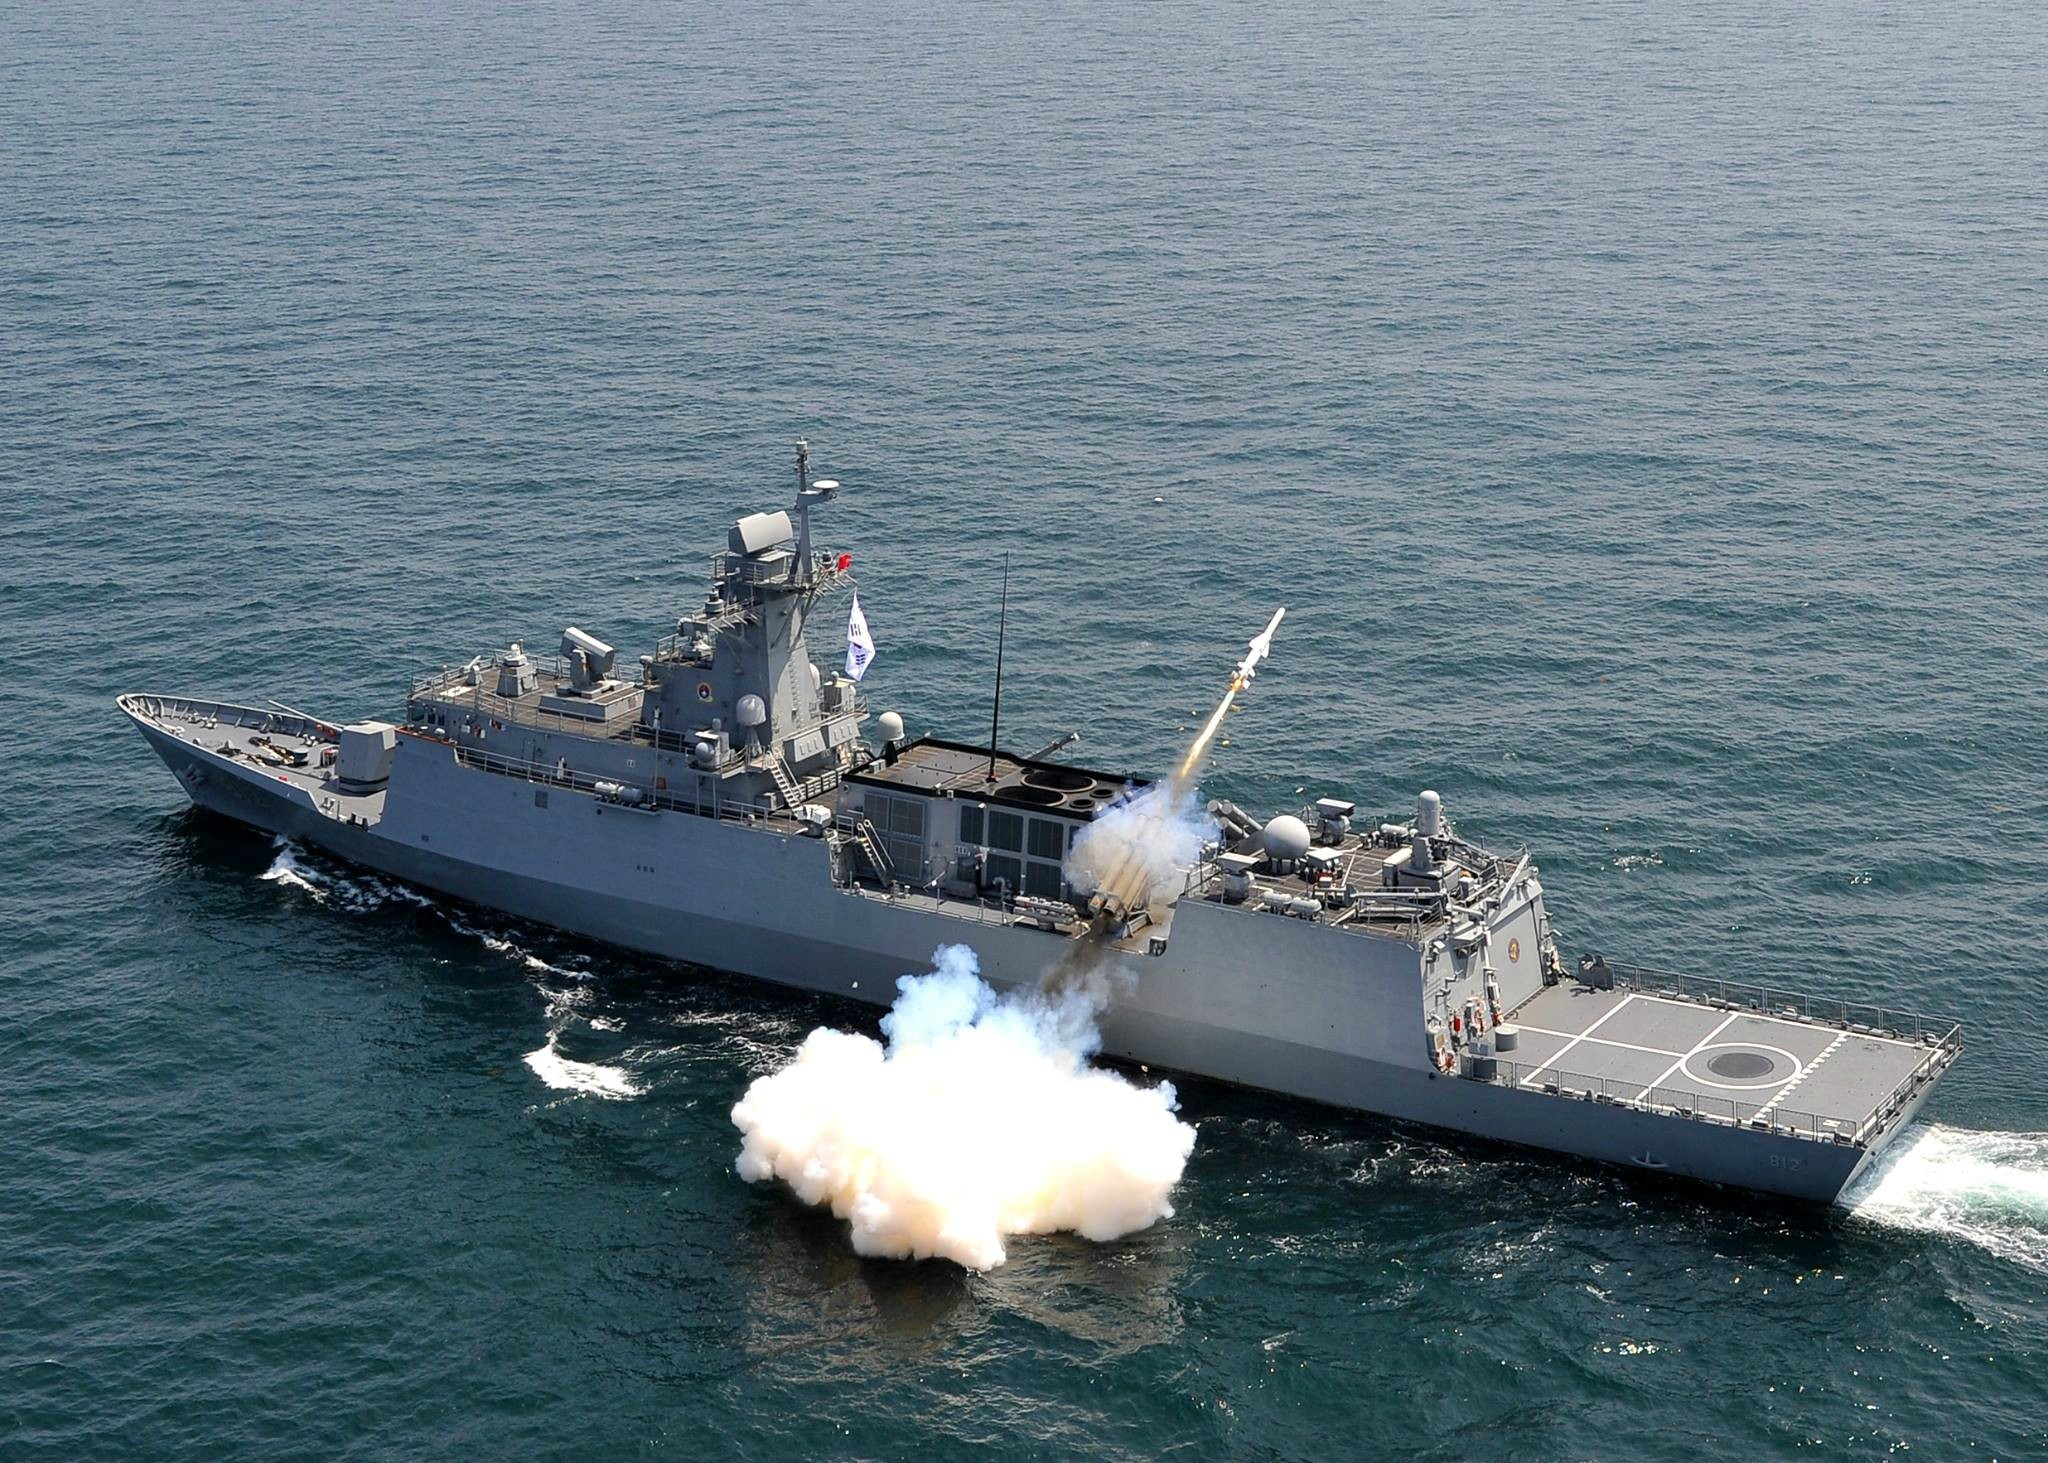 Incheon Class frigate firing a Hae Sung (Sea Star) SSM-700K anti-ship missile from its port side quad launcher.